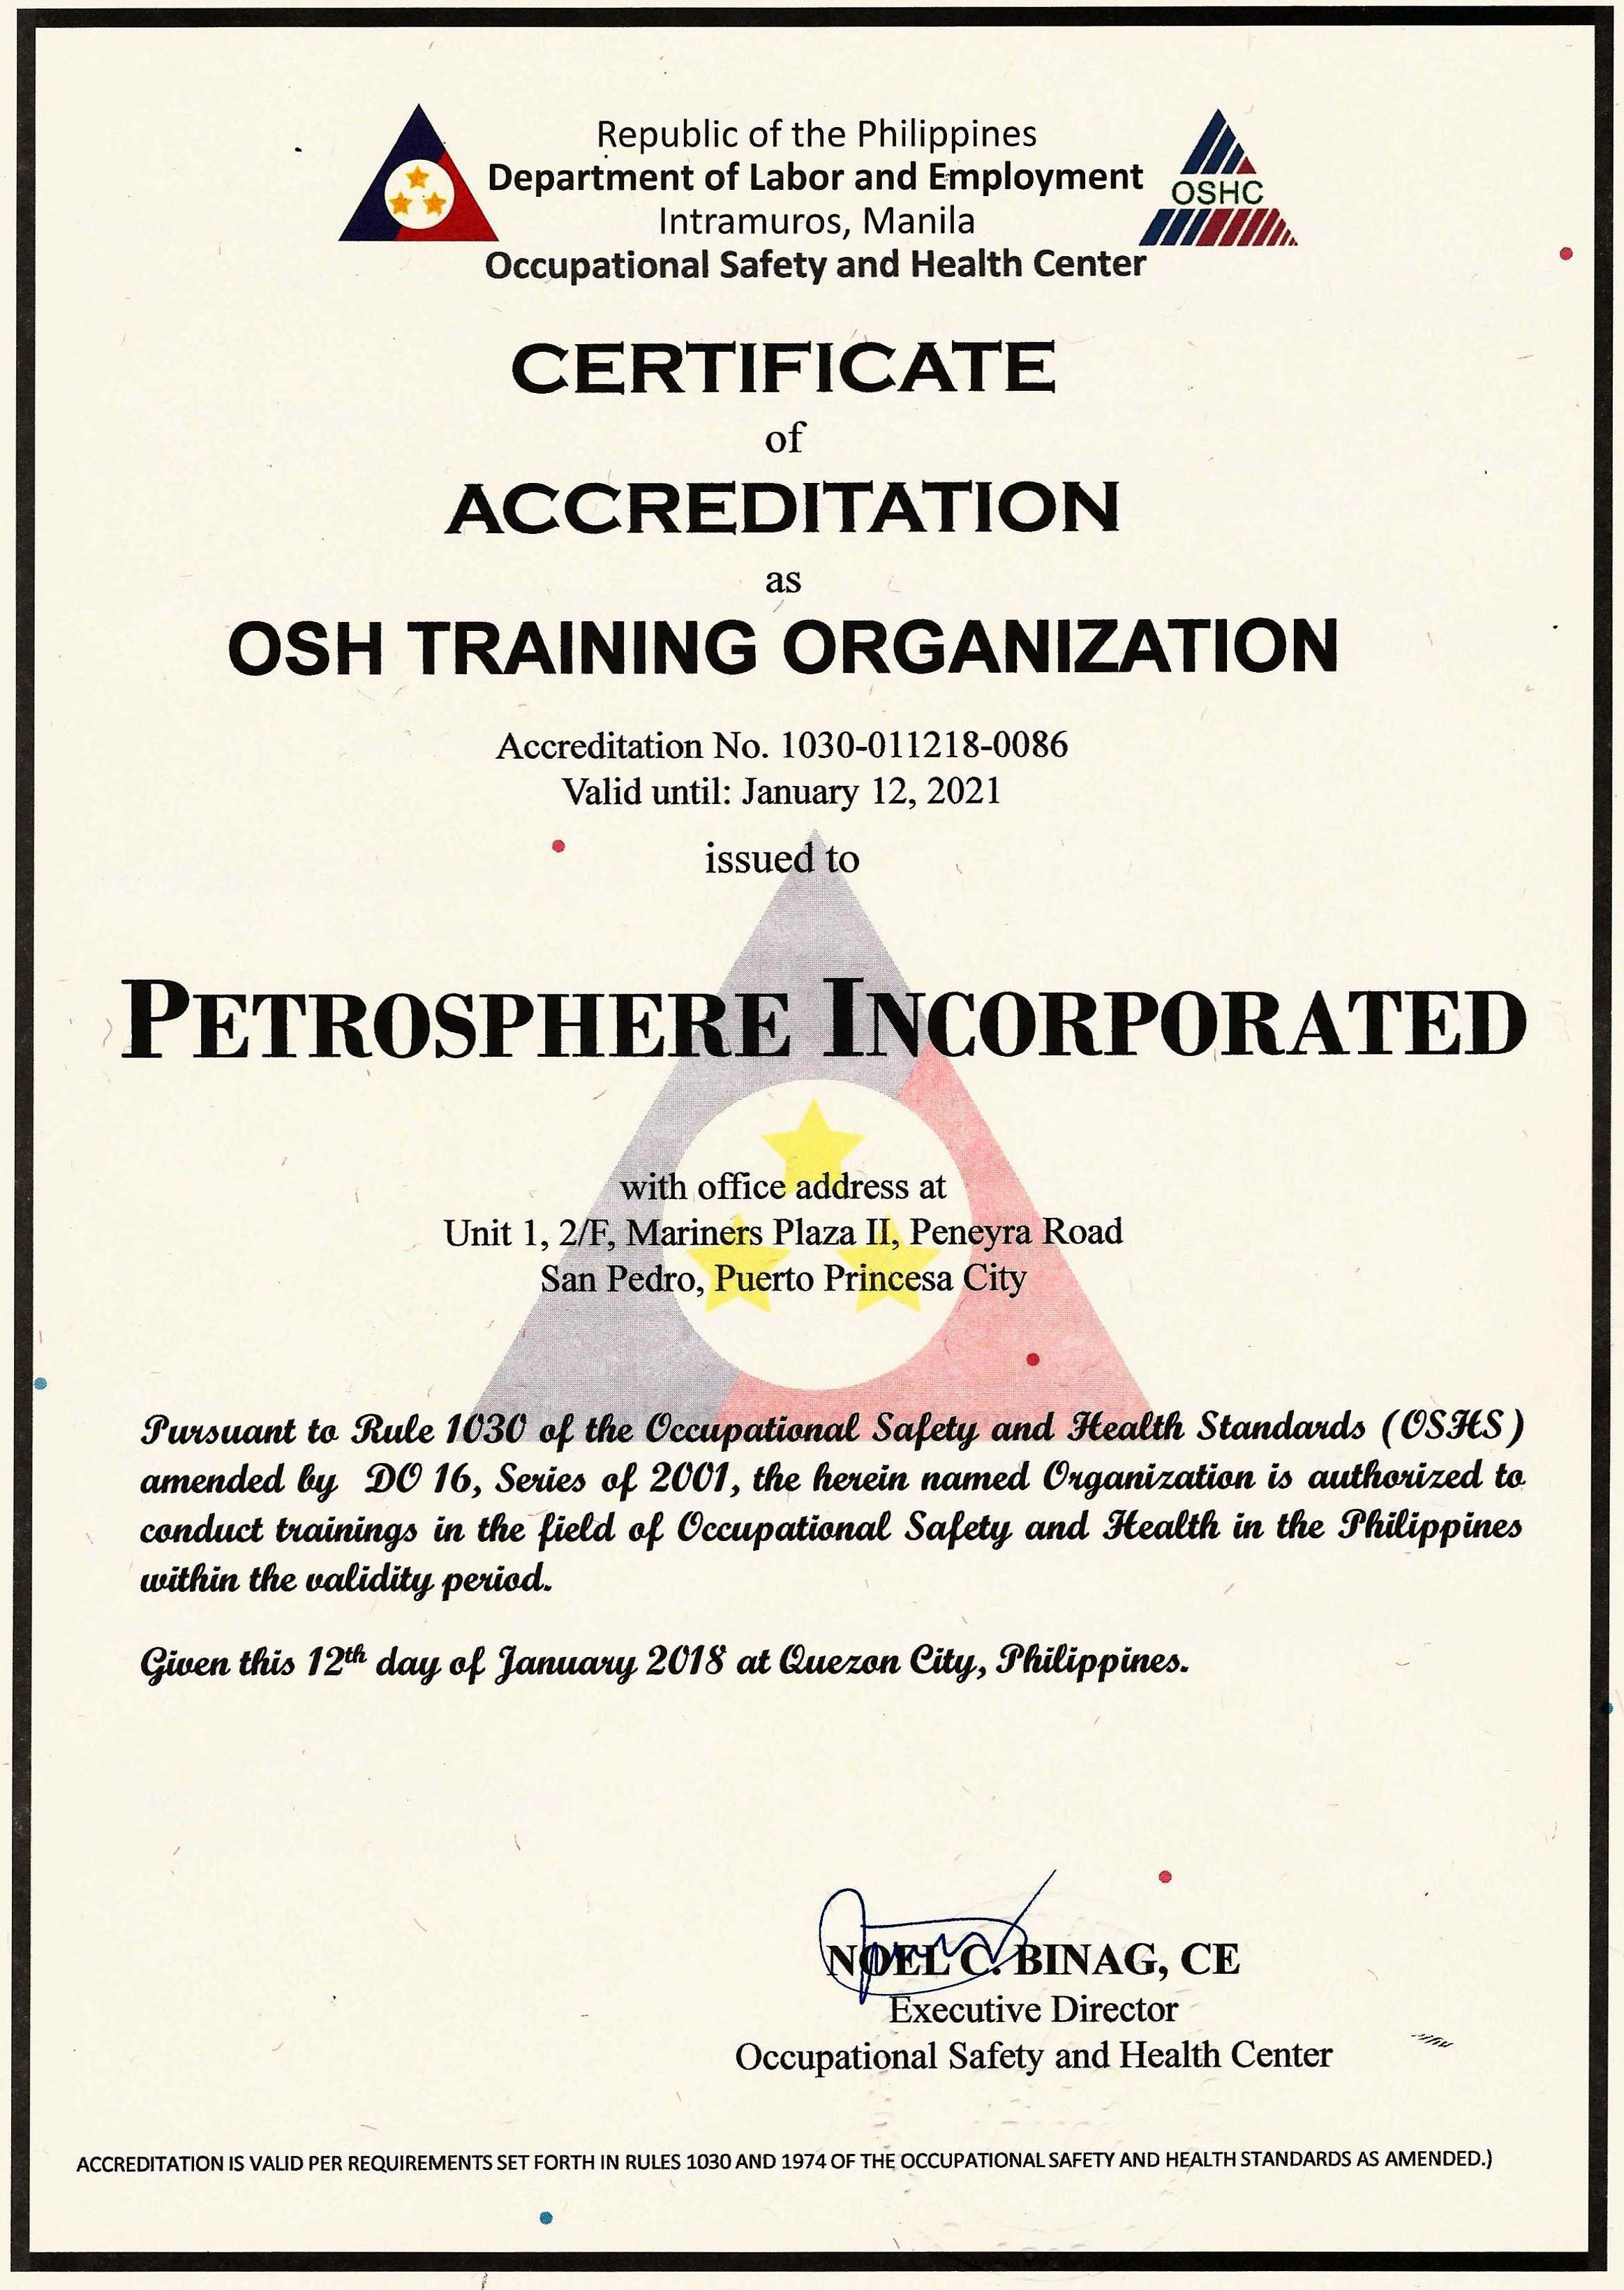 Petrosphere receives full accreditation from DOLE